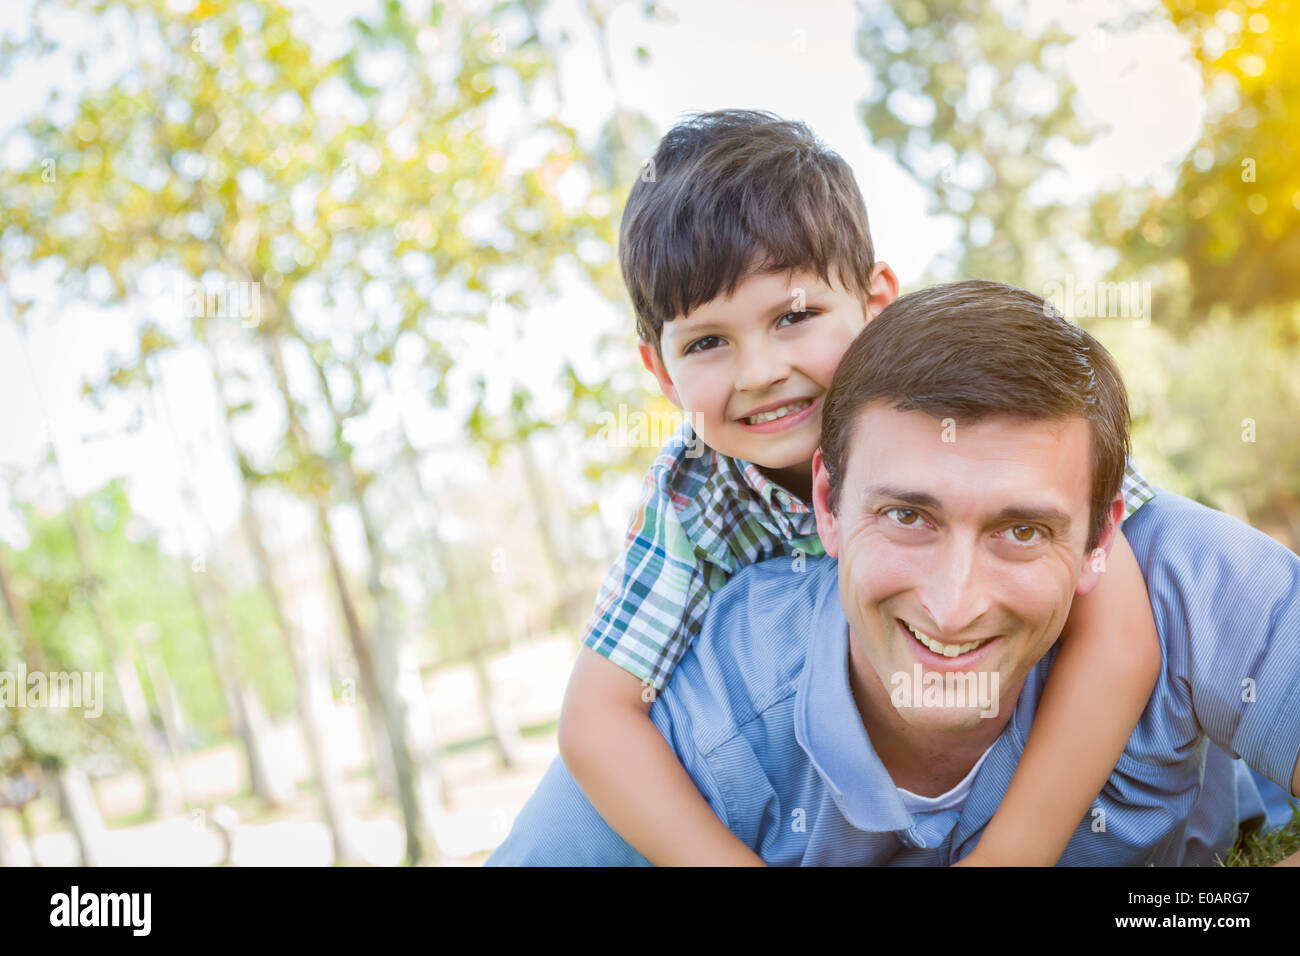 Mixed Race Father and Son Playing Together in the Park. - Stock Image